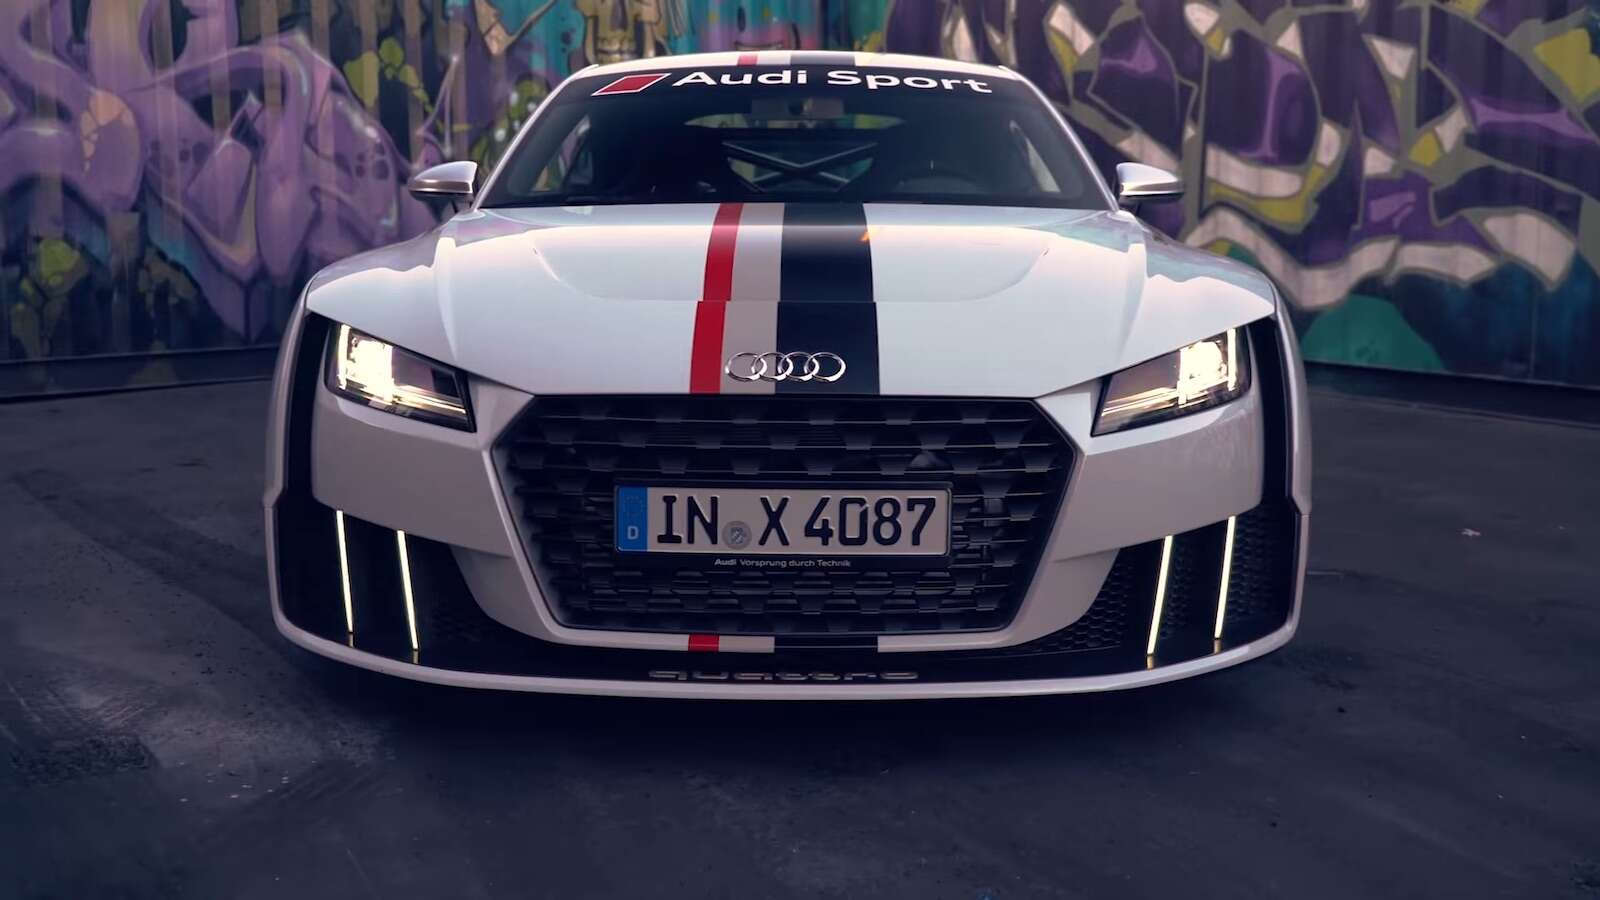 The 600-Horsepower Audi TT Clubsport Turbo Concept visits ...